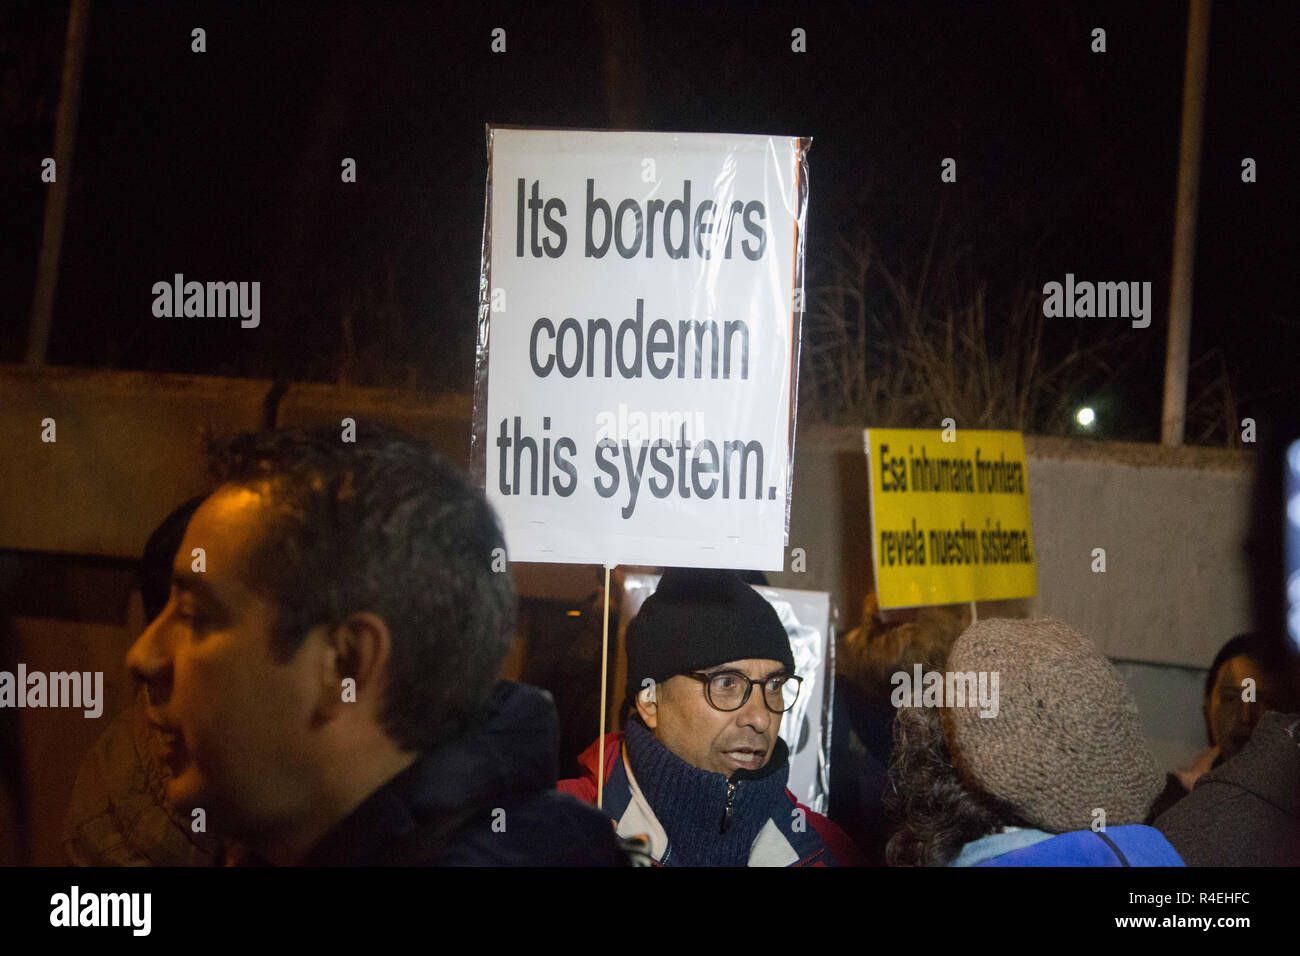 Madrid, Spain. 27th Nov, 2018. A protester seen holding a placard during the protest.Demonstration was held in front of the Immigration Detention Centre to demand for the closure of this centre and the rest in Europe for treating undocumented immigrants as criminals, depriving them of freedom, against Human Rights and for the racist treatment in them. Credit: Lito Lizana/SOPA Images/ZUMA Wire/Alamy Live News - Stock Image